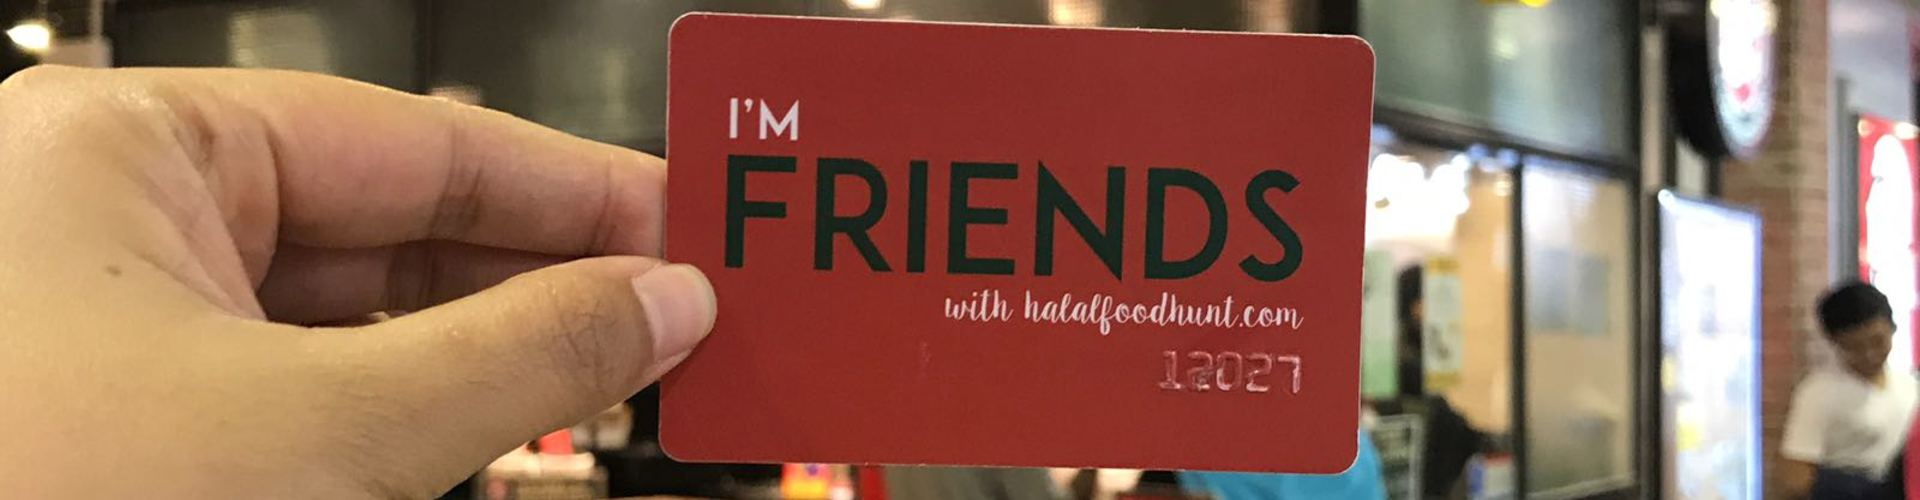 Halalfoodhunt friends card pastamania